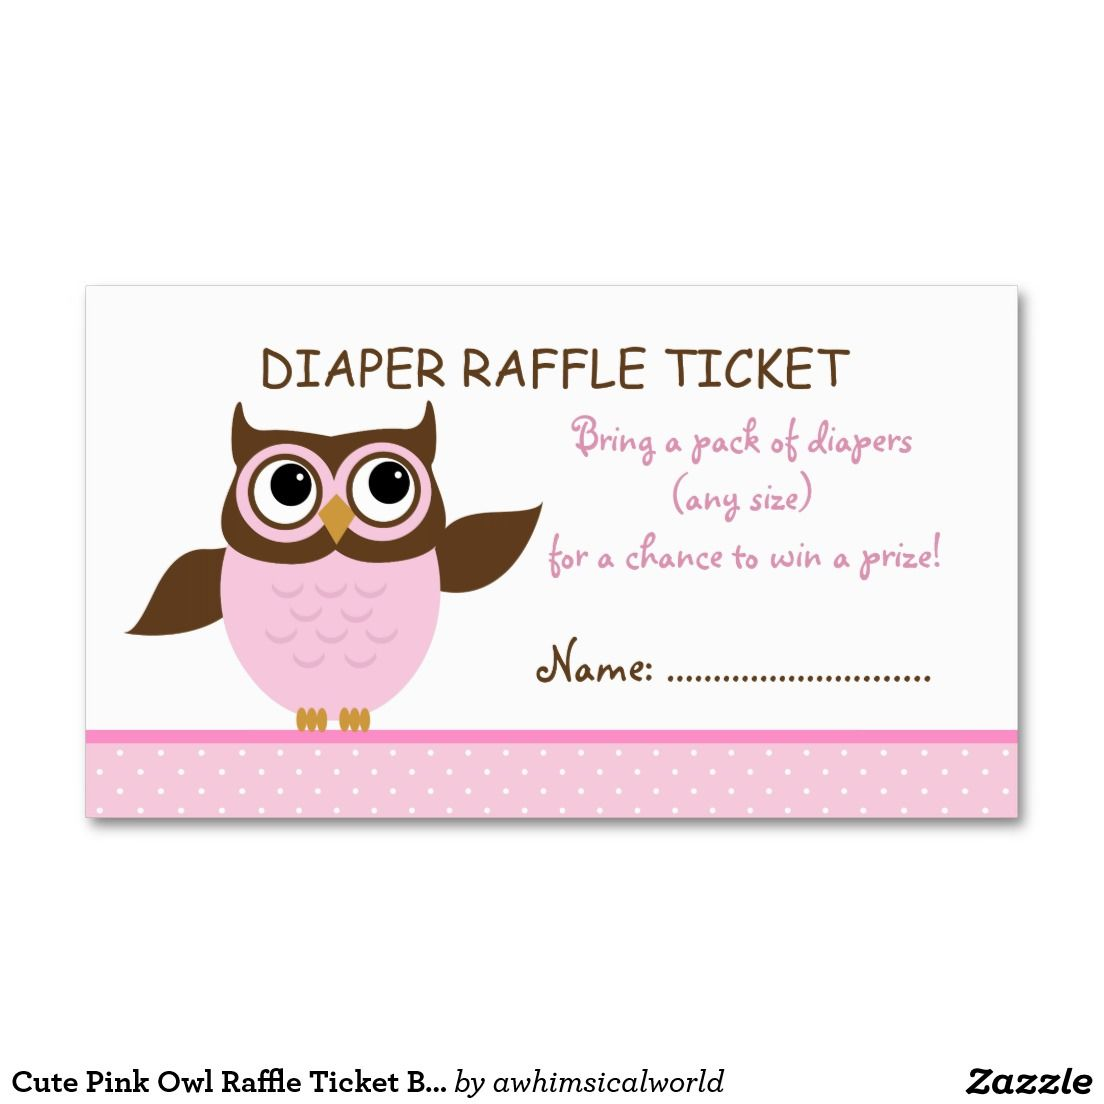 cute pink owl raffle ticket business card template pink cute pink owl raffle ticket business card template